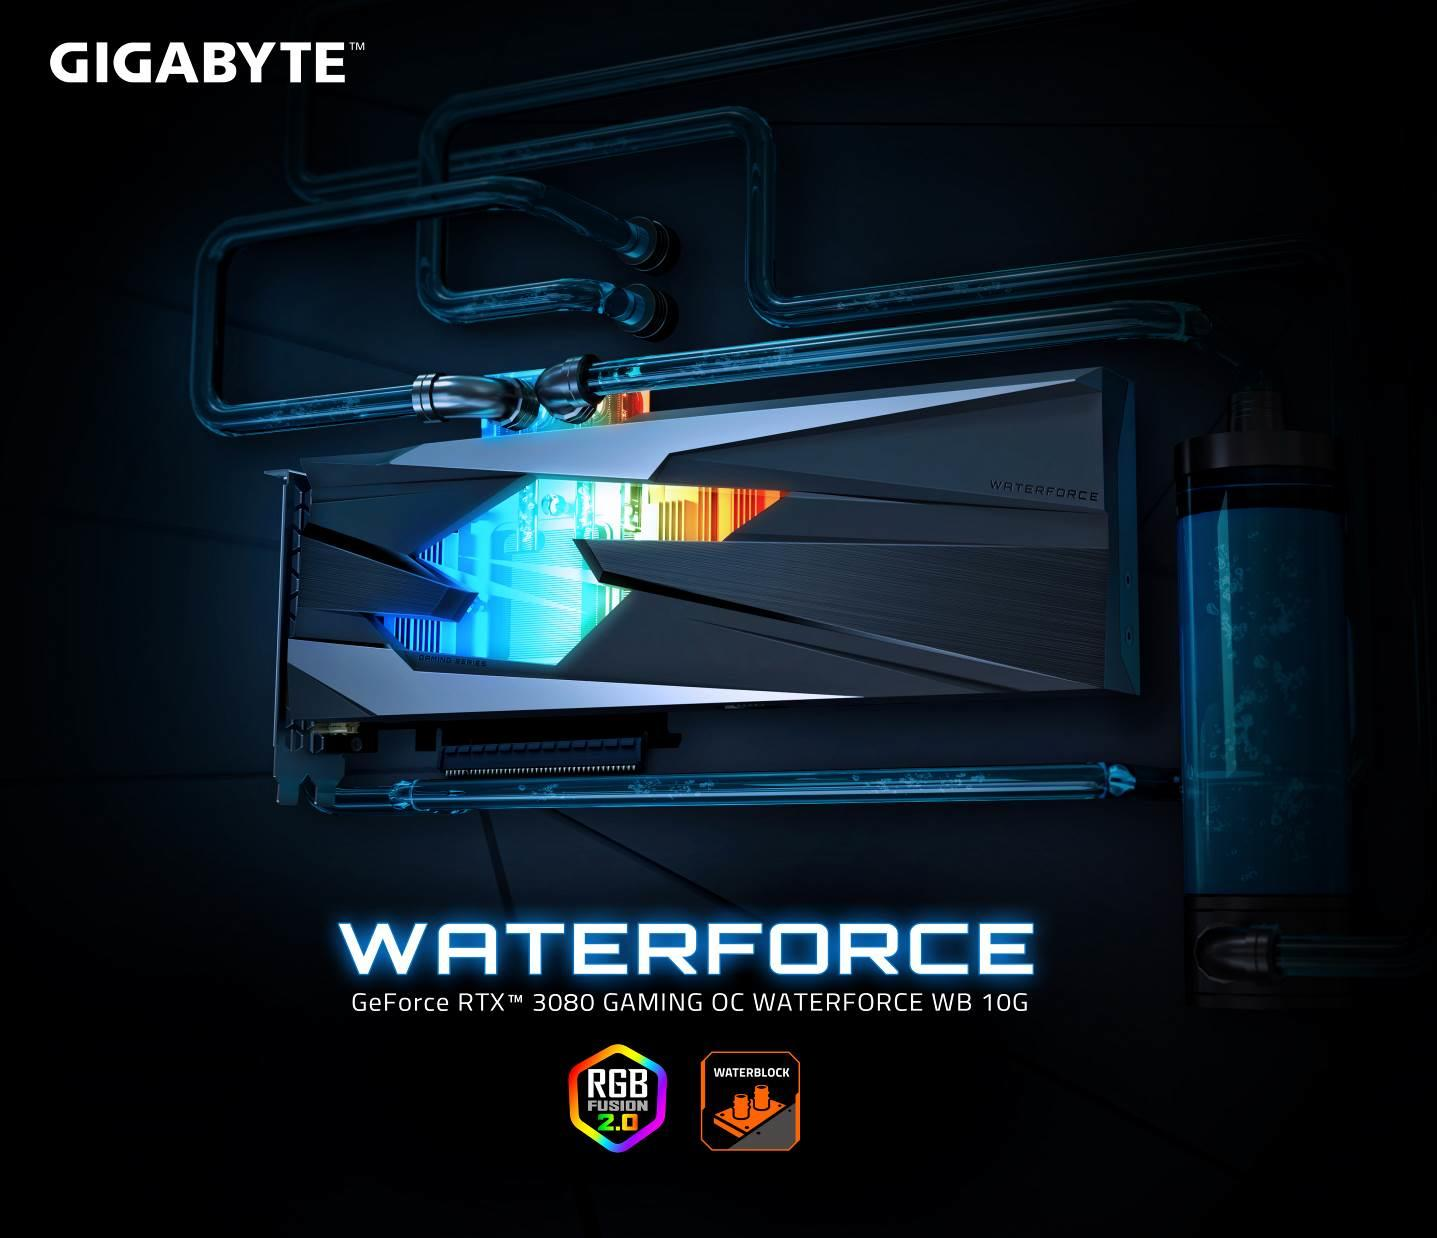 Ra mắt GeForce RTX 3080 GAMING OC WATERFORCE WB 10G